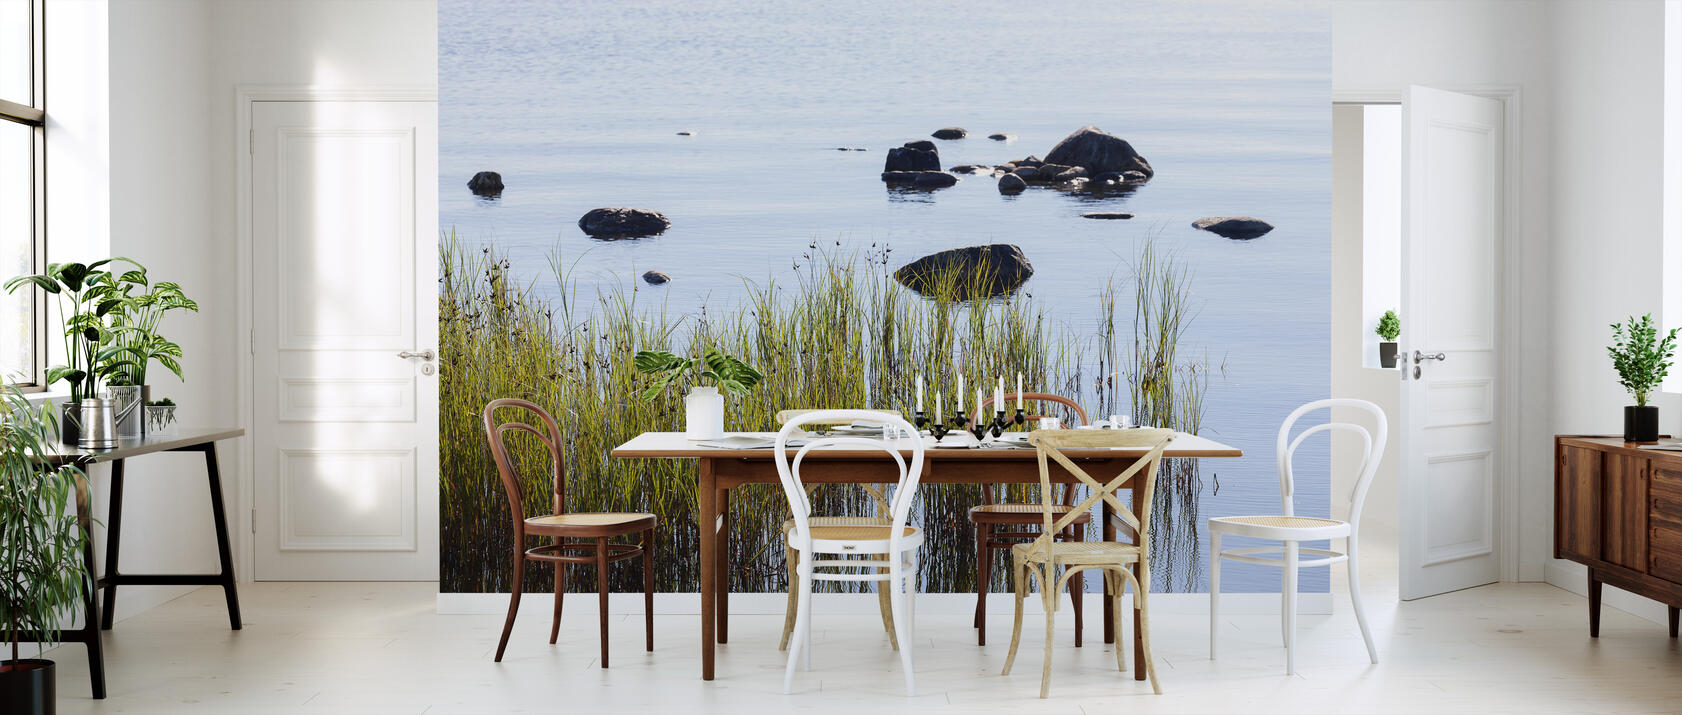 stones in water gotland fototapete nach ma photowall. Black Bedroom Furniture Sets. Home Design Ideas